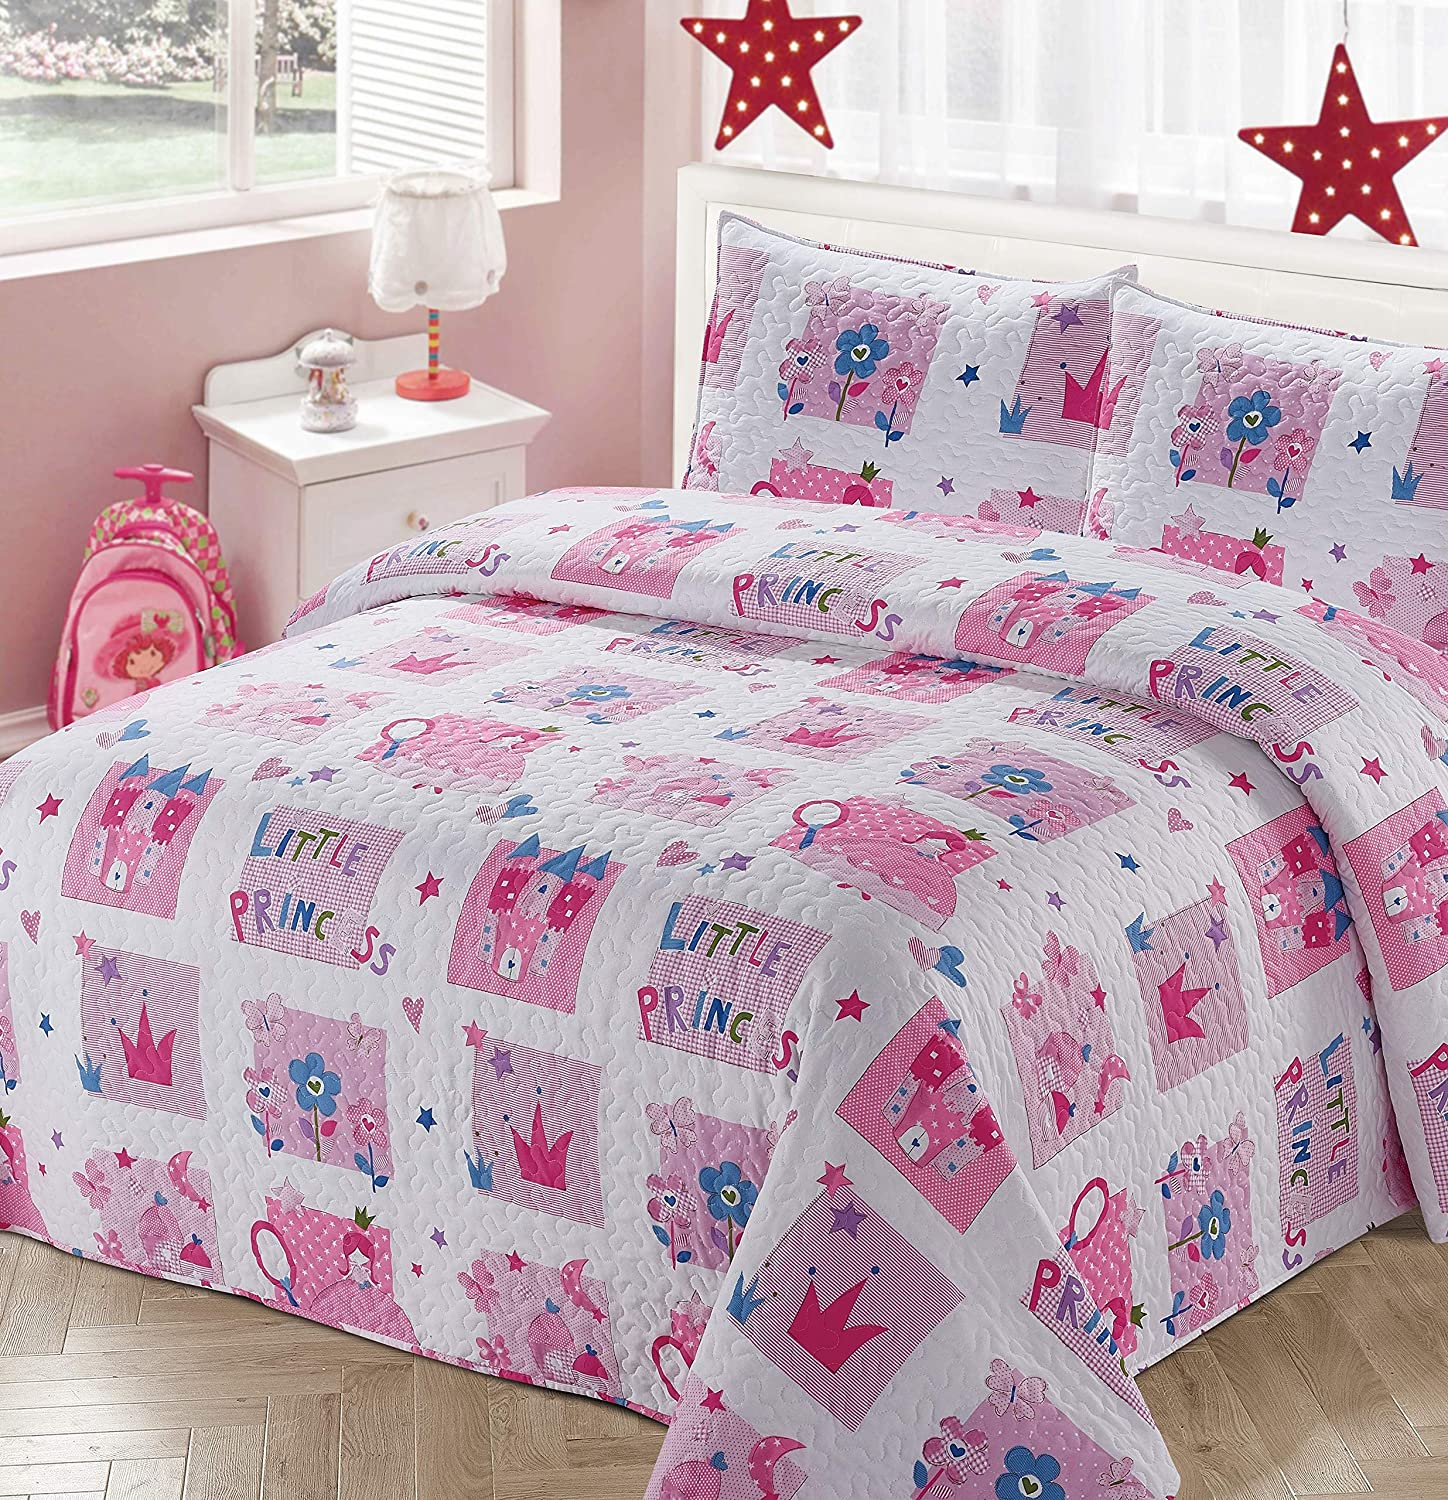 Kids Zone Home Linen 3pc Full/Queen Bedspread Coverlet Quilt Set for Girls Princess Castle Crown Flowers Pink Blue White